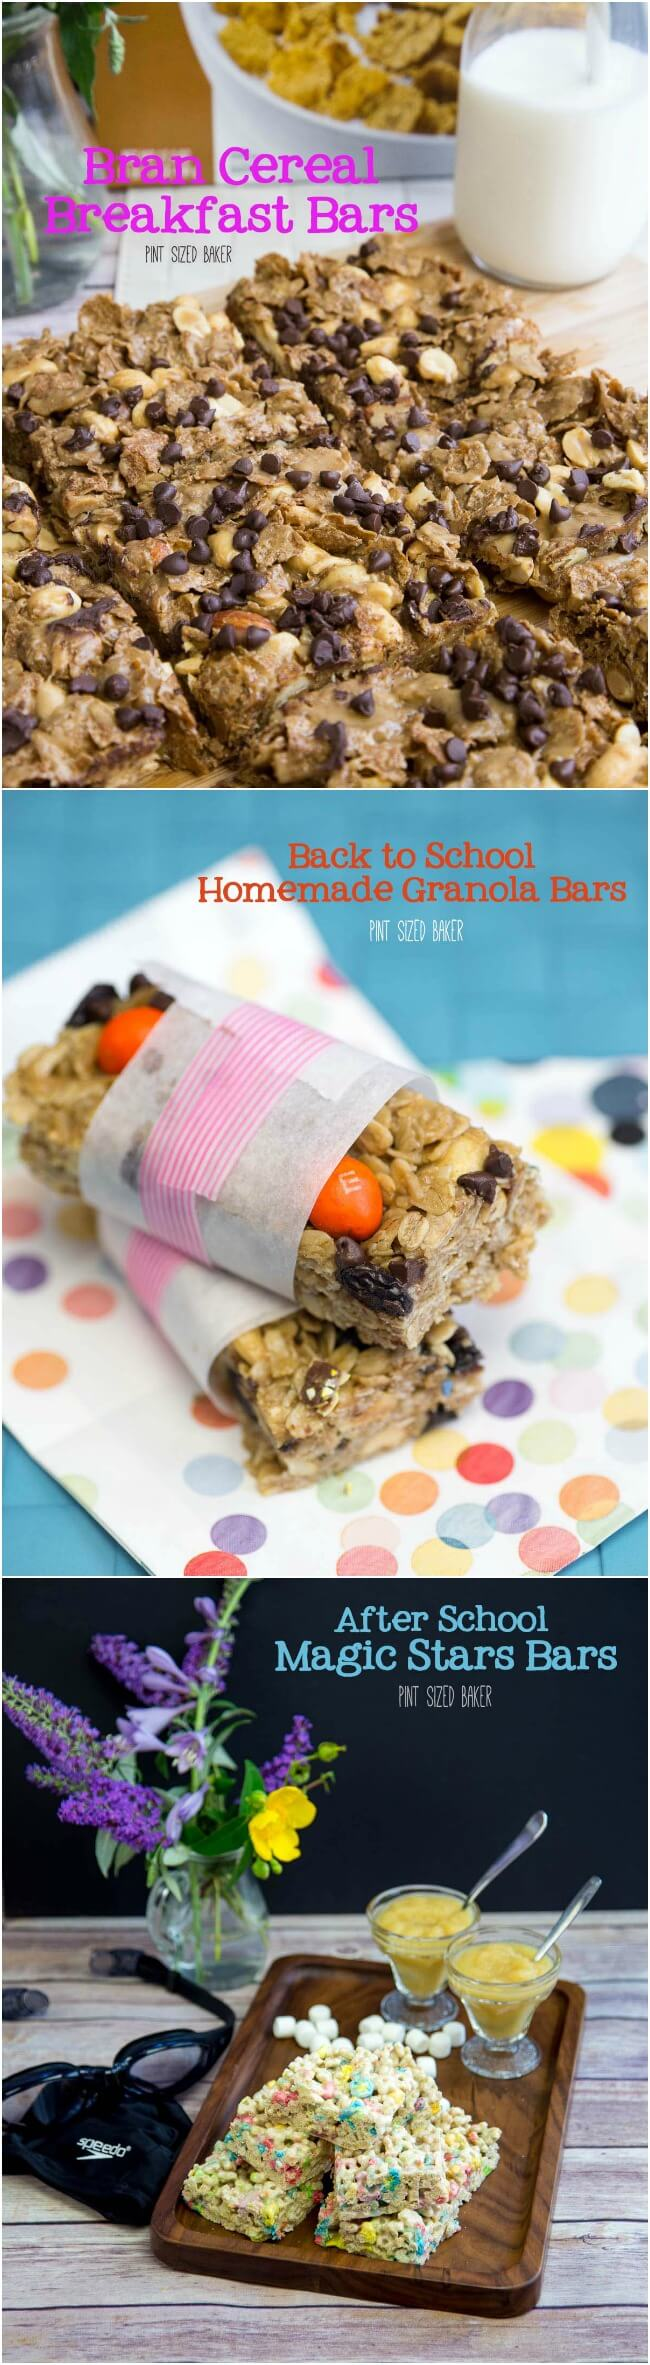 Make back to school easy with Harris Teeter. These Back to School Cereal bars are ready for breakfast, lunch box, and after school!